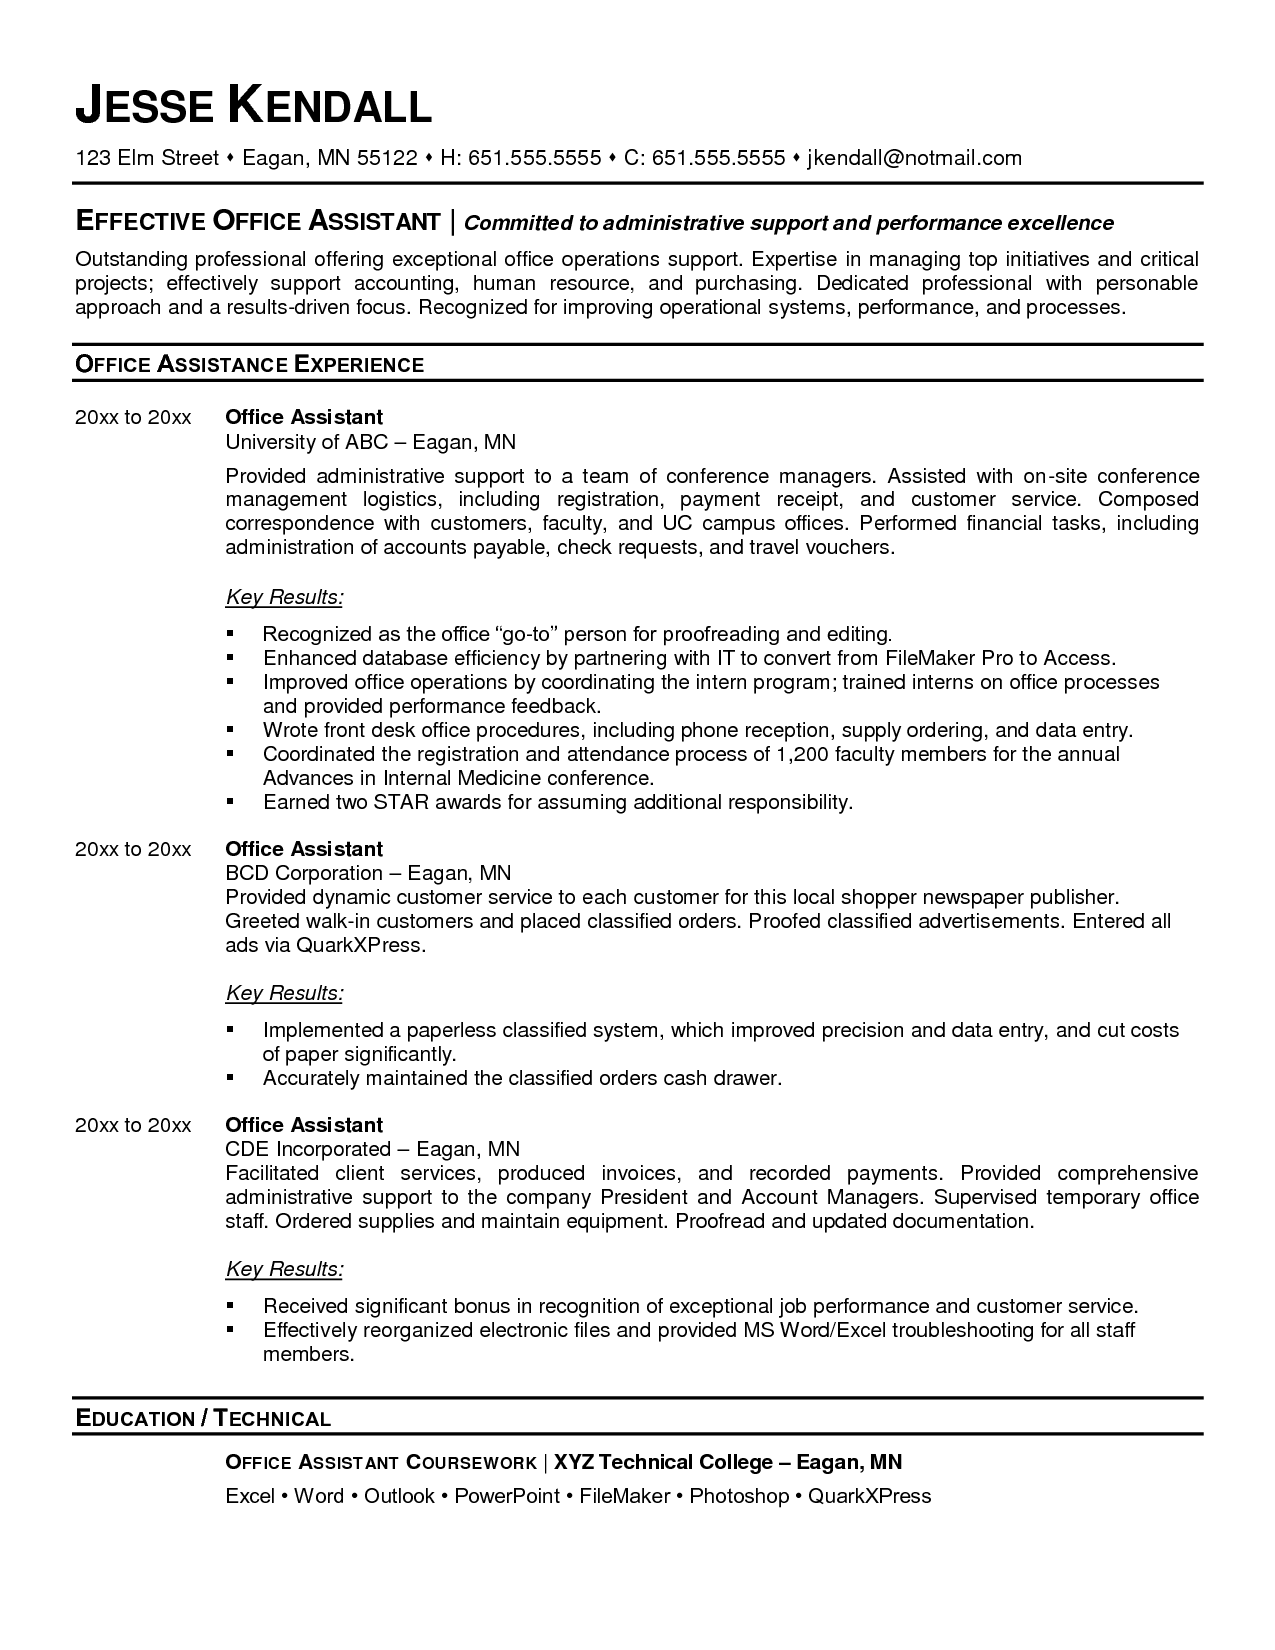 medical office assistant resume - Paraeducator Resume Sample